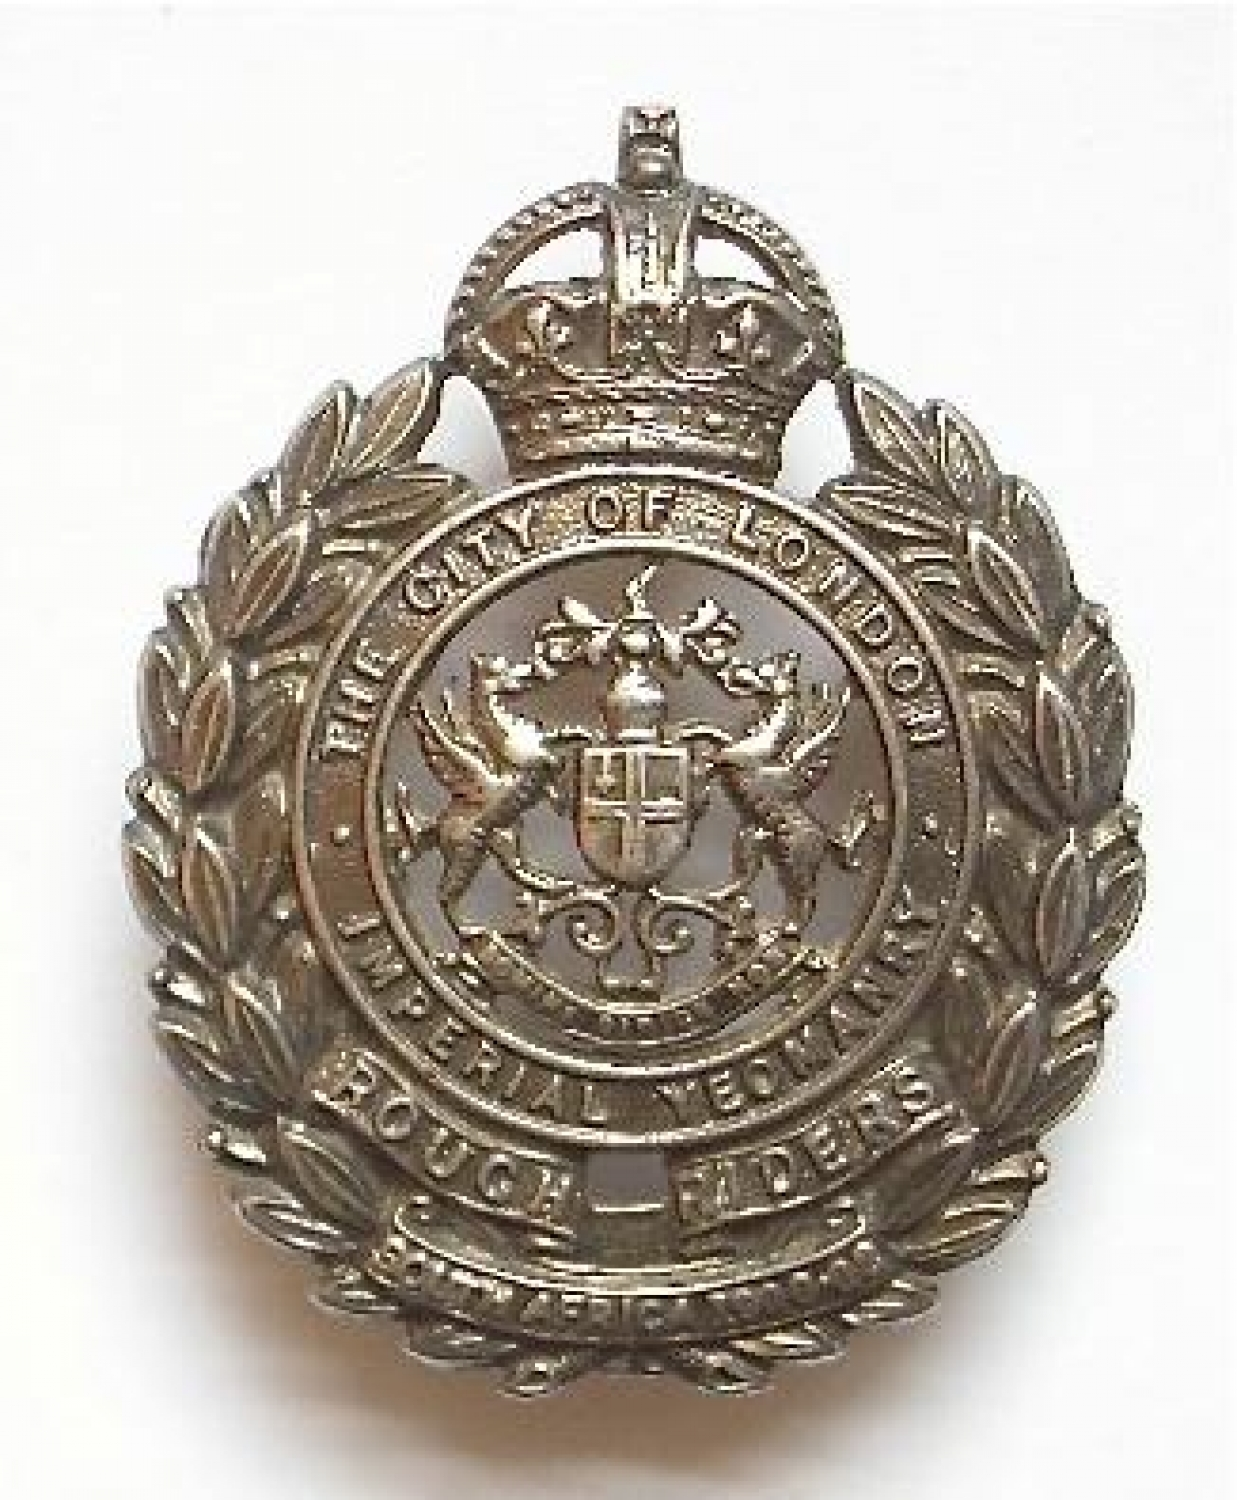 Rough Riders Imperial Yeo NCO's arm badge